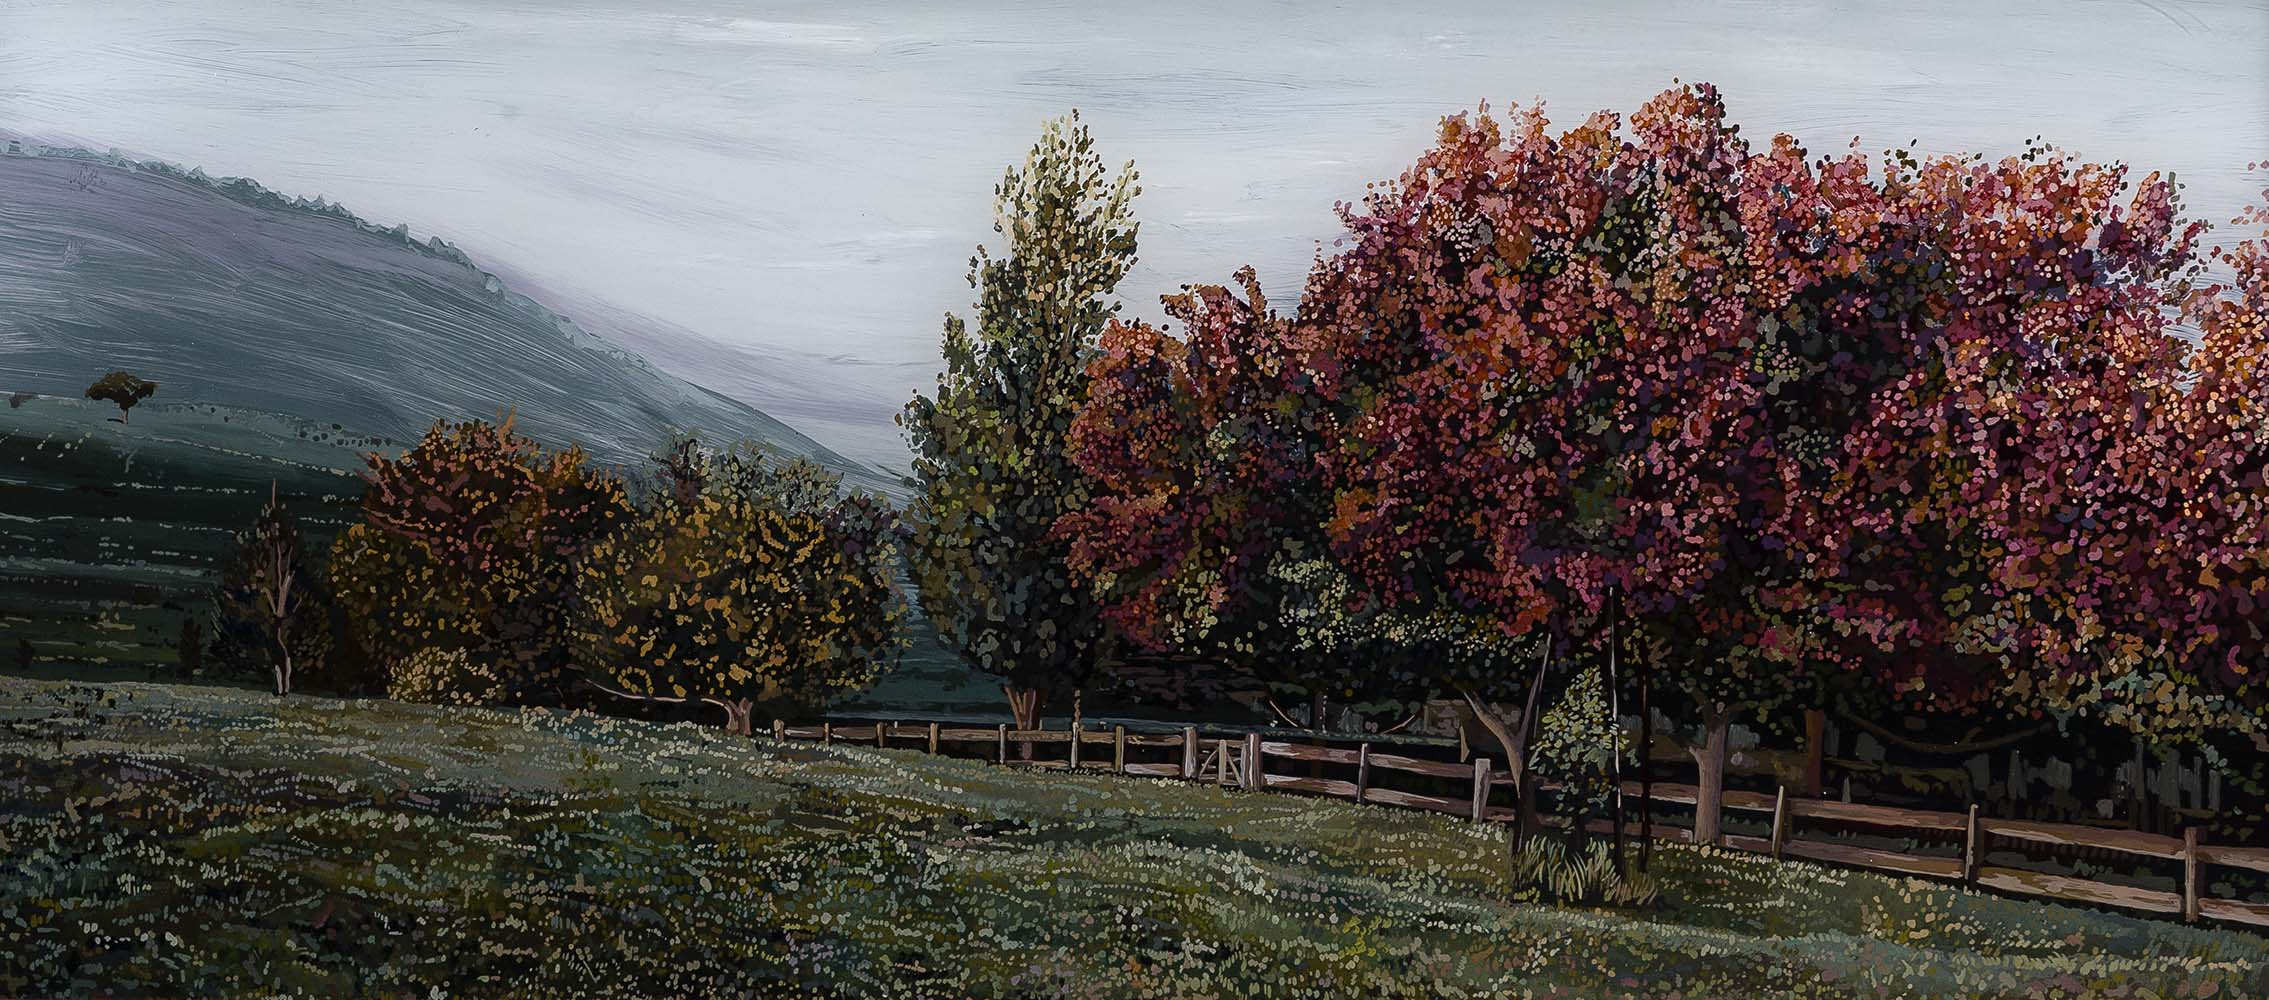 Southern Highlands  Acrylic on plexiglass 18in x 36in 2014